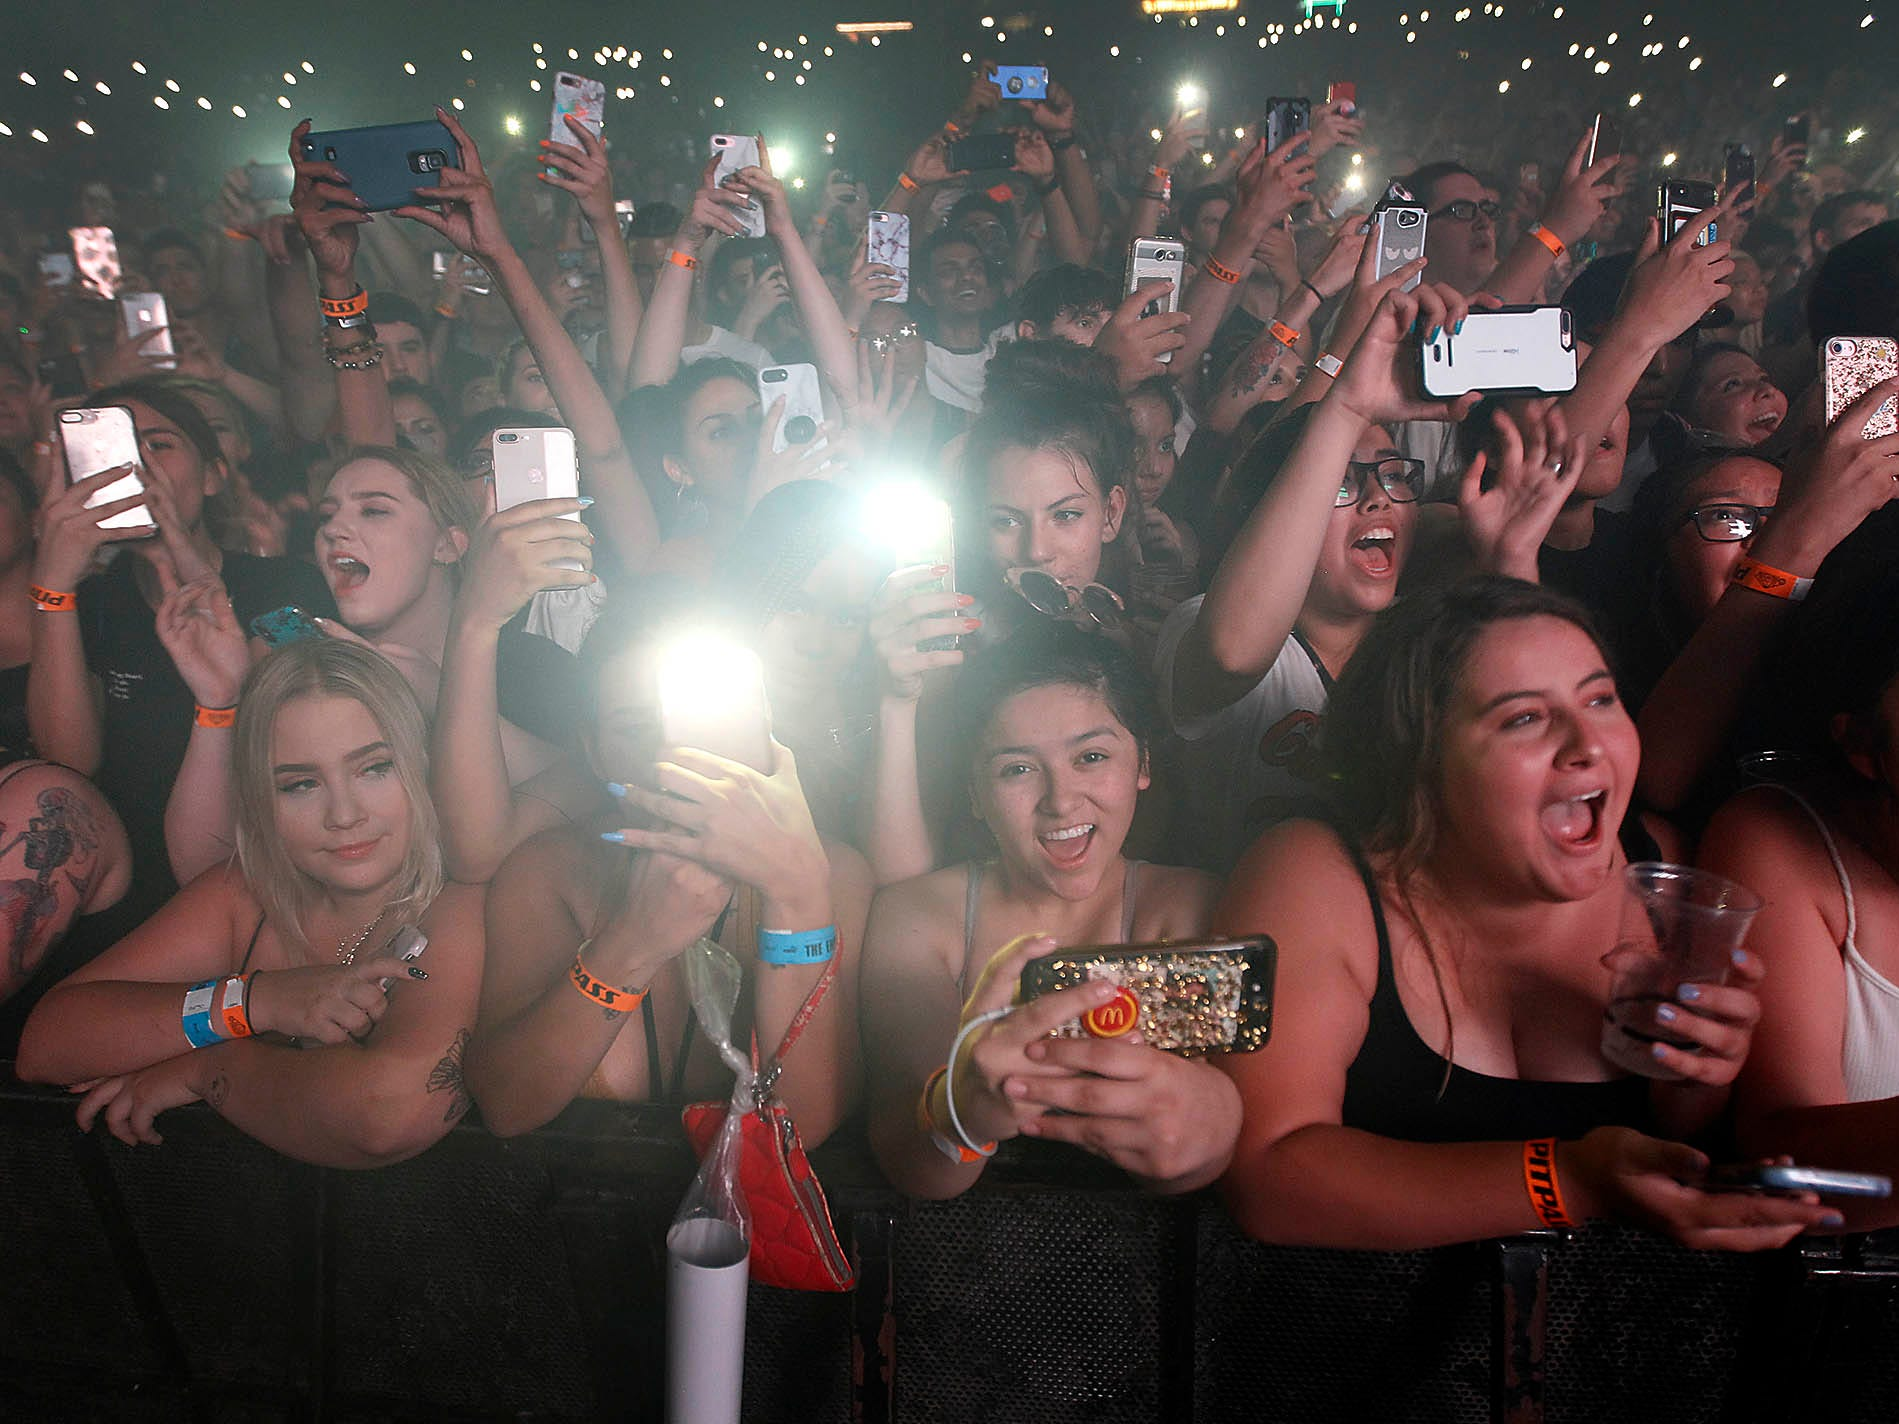 Fans scream as G-Eazy performs during The Endless Summer Tour at Ak-Chin Pavilion in Phoenix on Aug. 3, 2018.